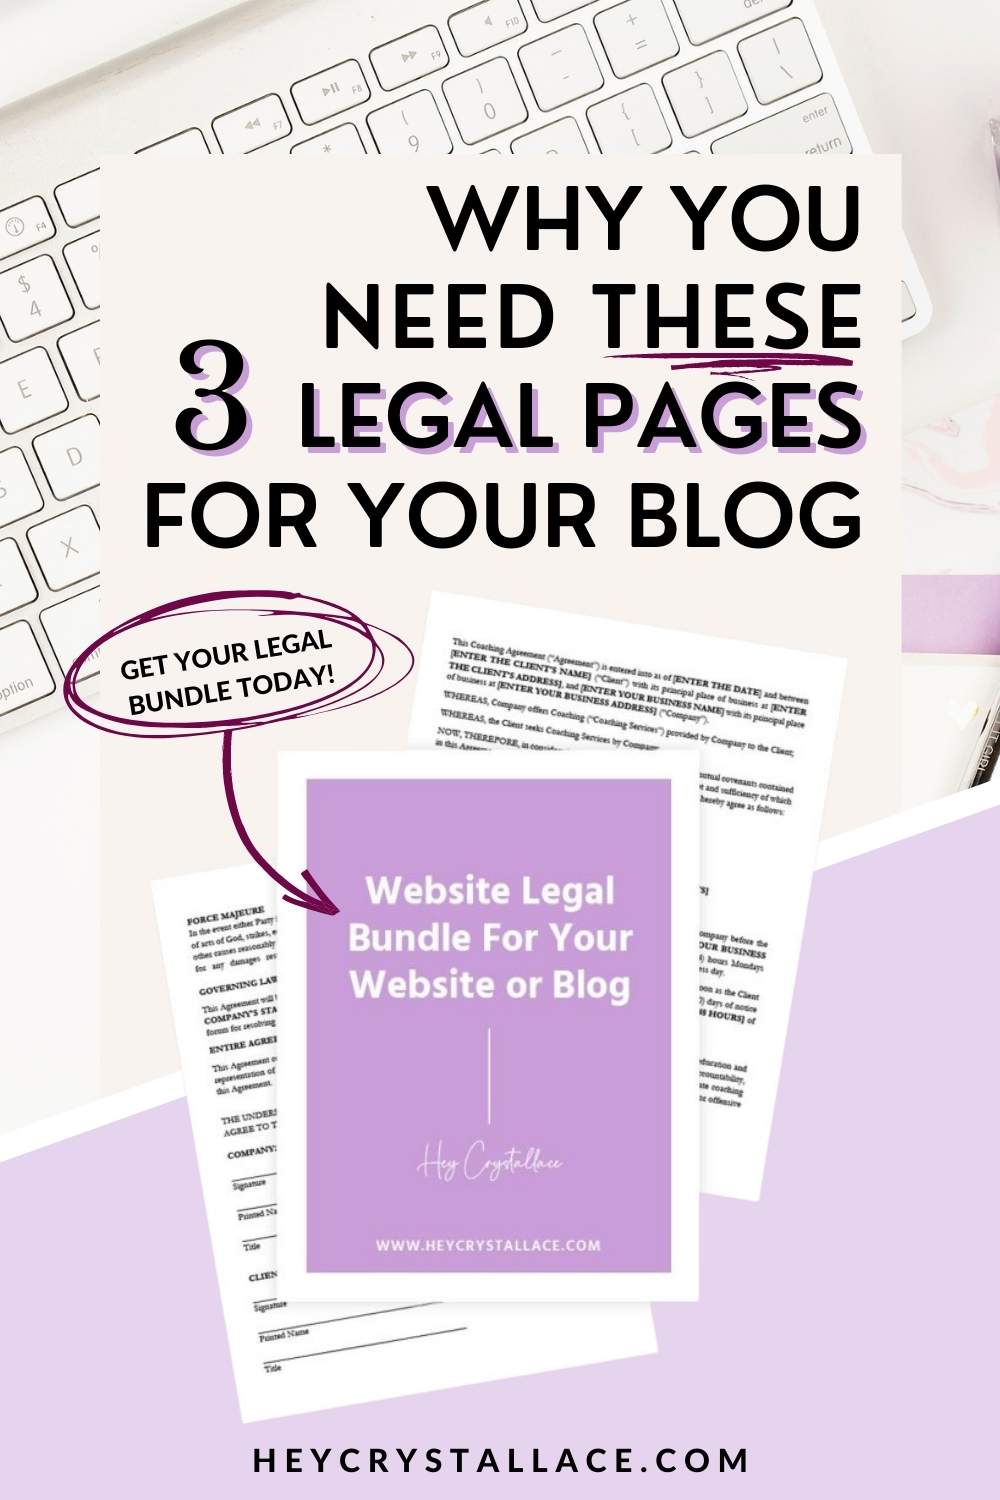 6 Reasons Why You Need These 3 Legal Pages for Your Blog